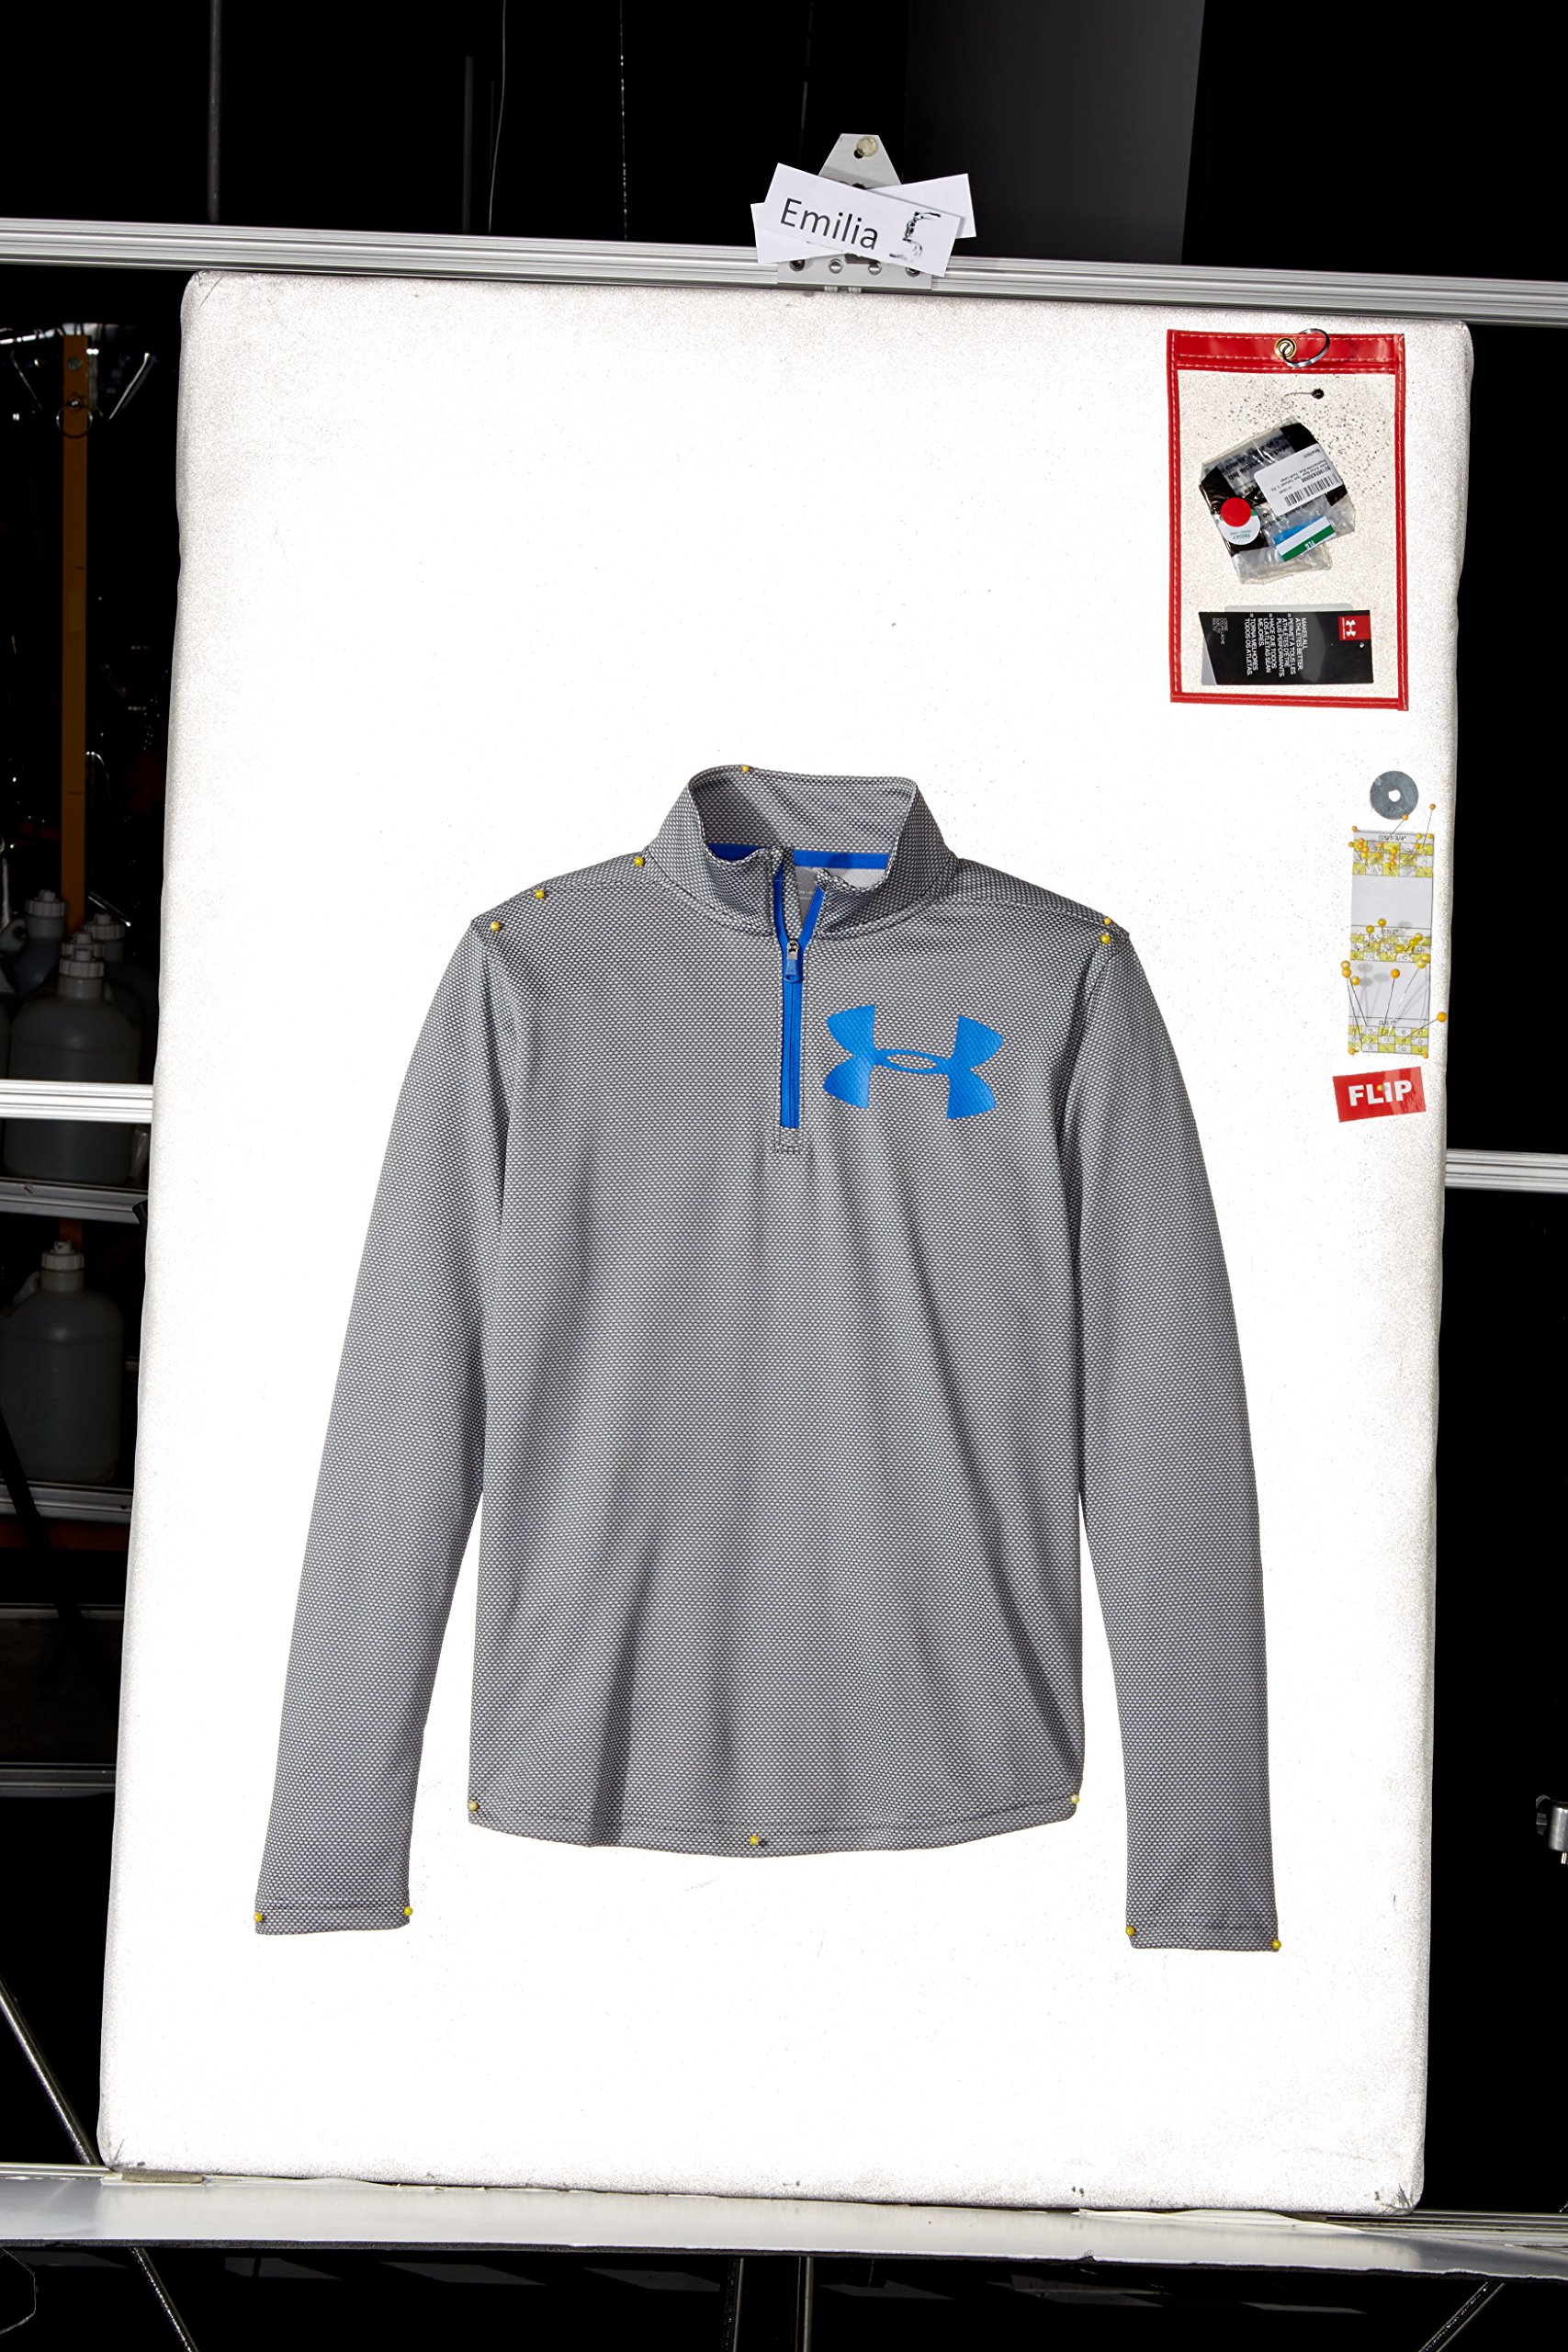 Under Armour Boys' Tech Textured ¼ Zip,Graphite /Ultra Blue, Youth X-Small by Under Armour